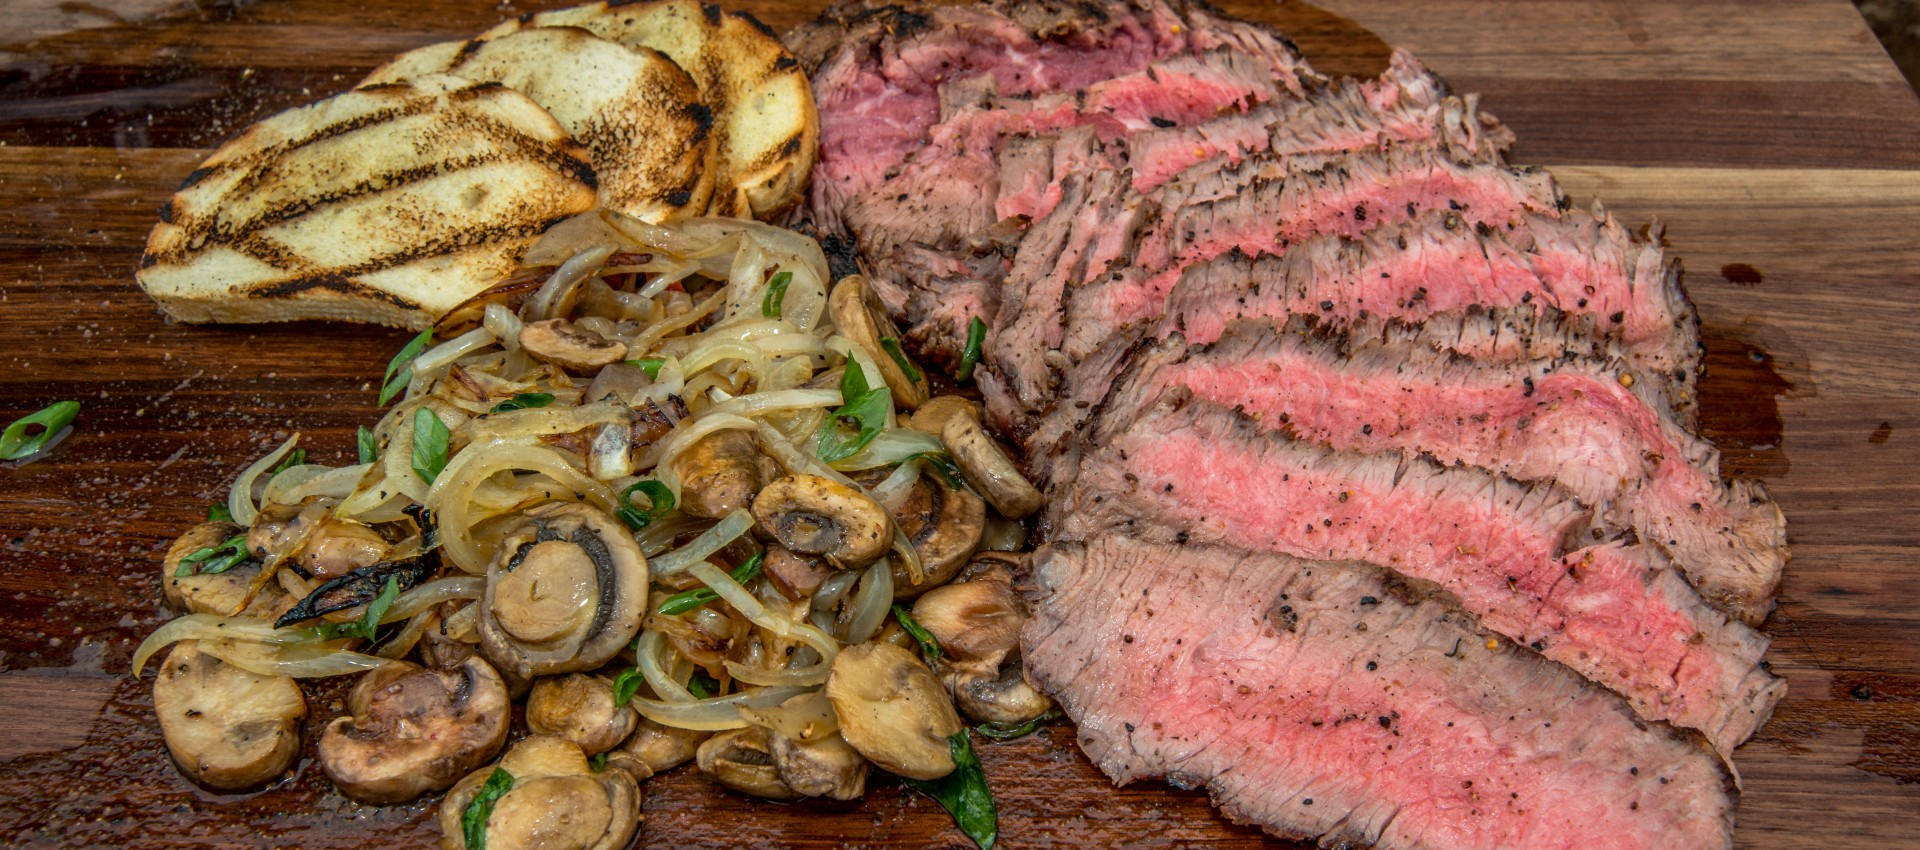 Grilled Flank Steak with GrillGrate